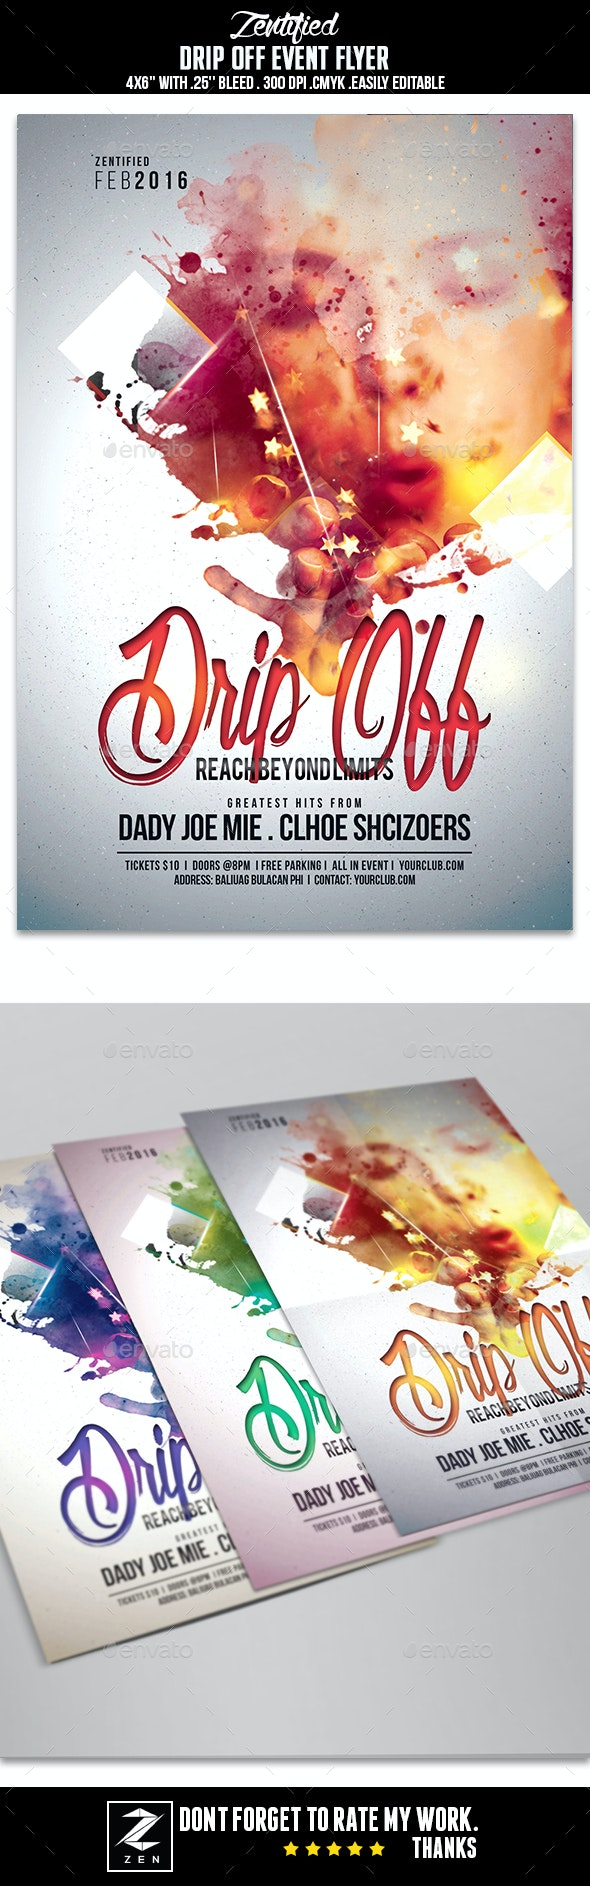 Drip Off Event Flyer - Events Flyers